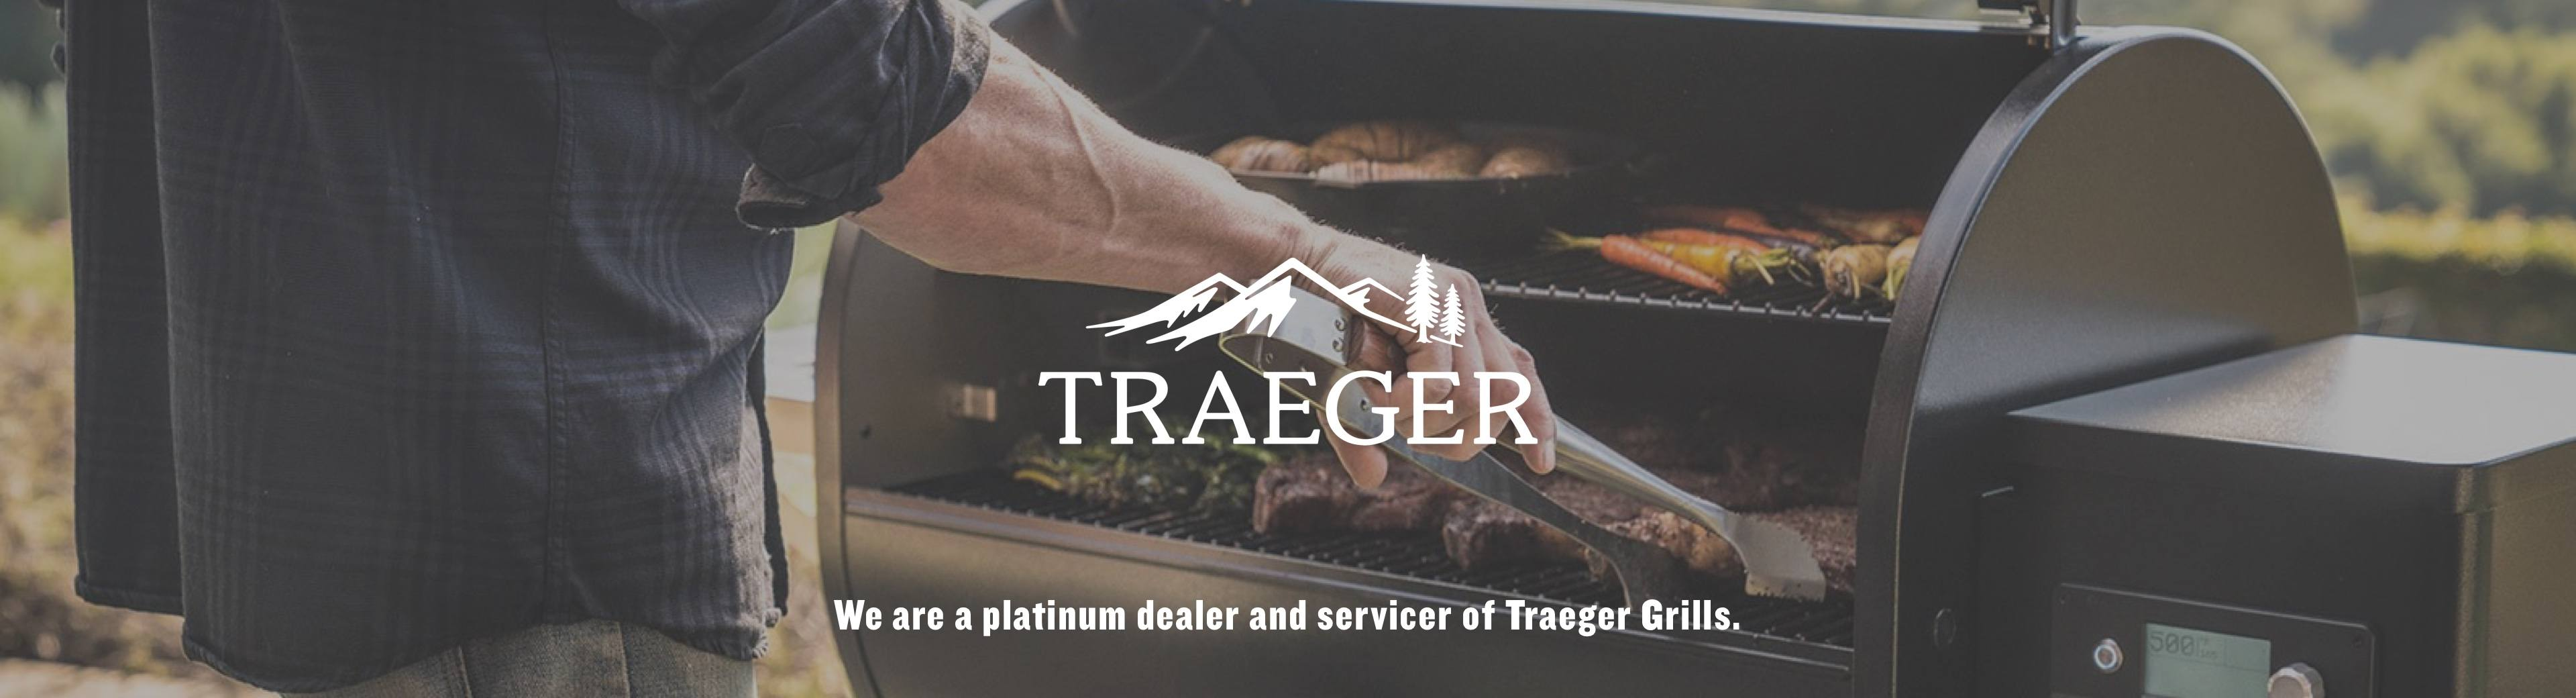 """Traeger Grill with logo - """"We are a platinum dealer and servicer of Traeger Grills."""""""